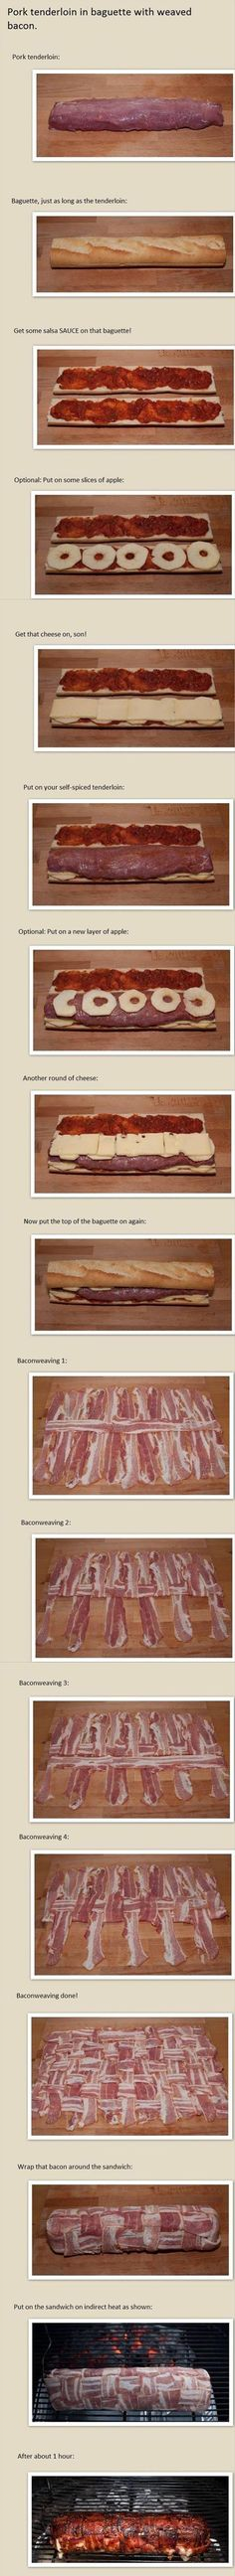 iDidAFunny Awesome Food Ideas - iDidAFunny